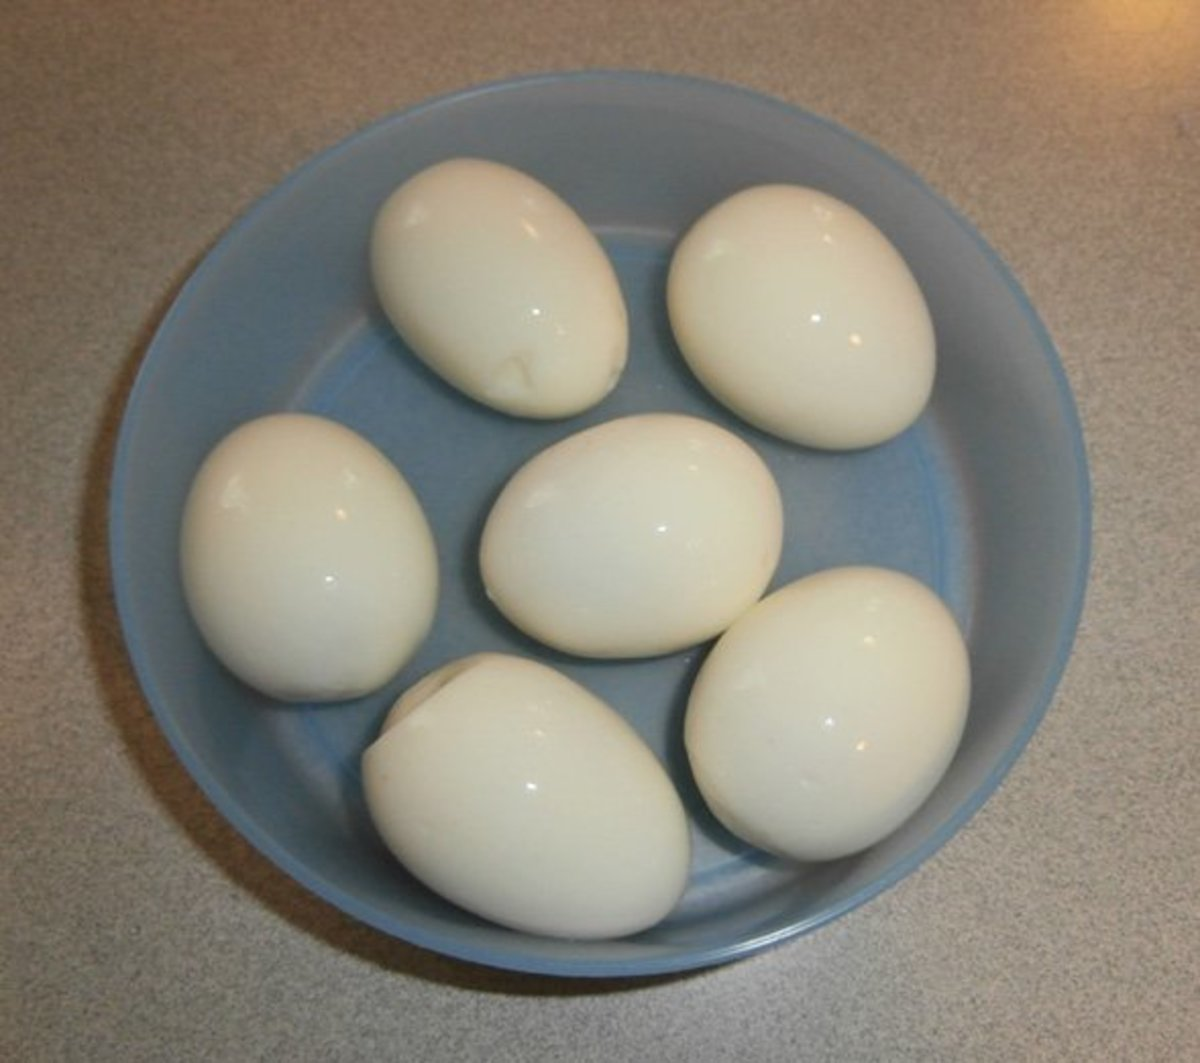 Let me show you how I peeled these hard boiled eggs.